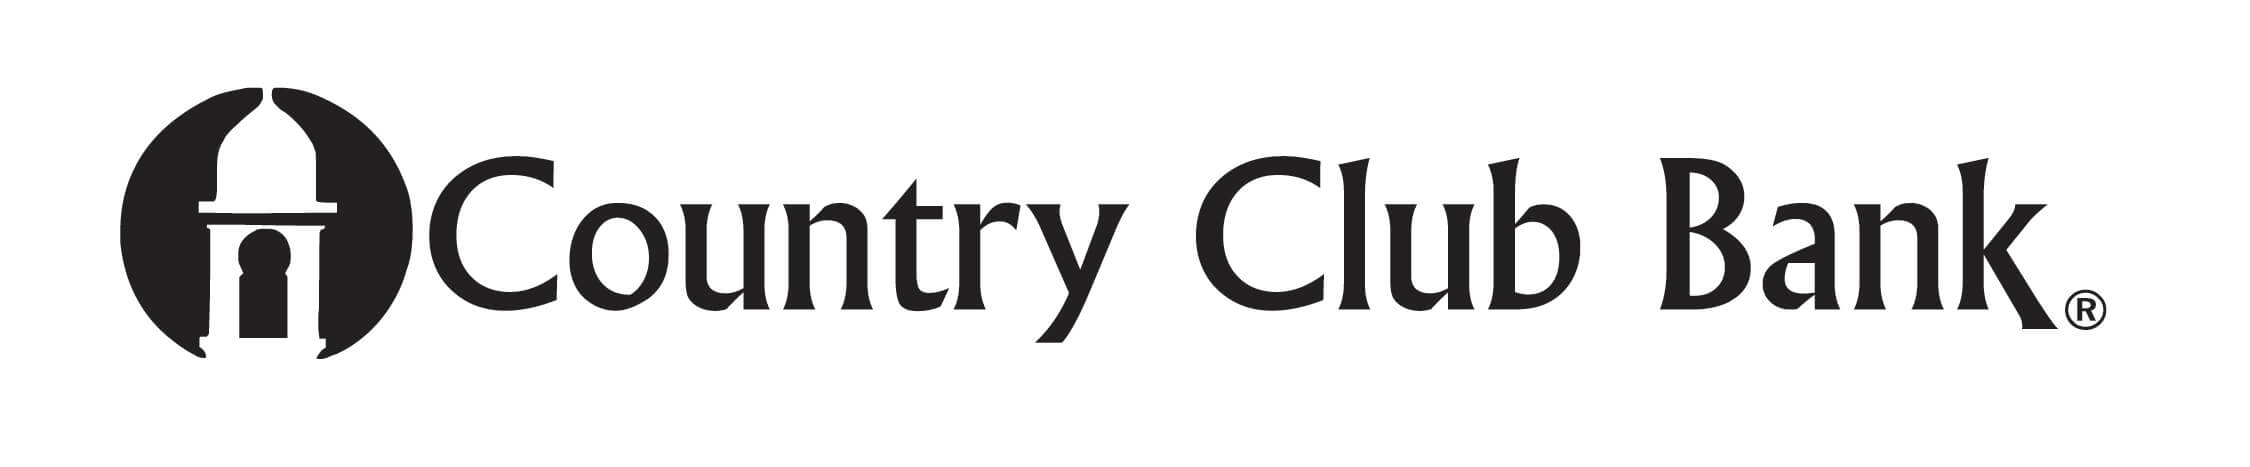 Country Club Bank 2018